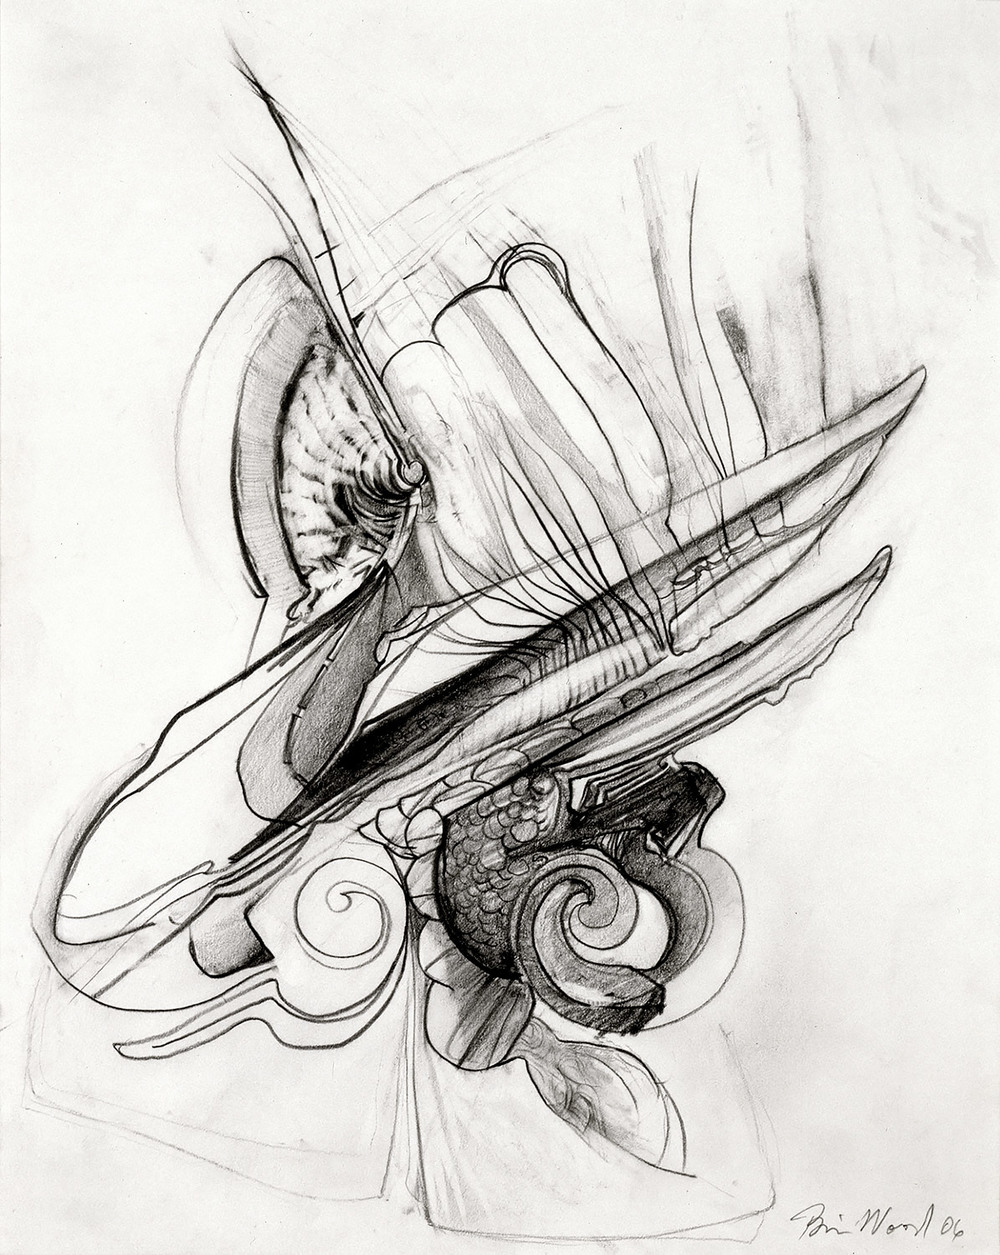 """Brian Wood <br> """"Spume"""" <br> Graphite on paper <br> 14 x 11 in."""